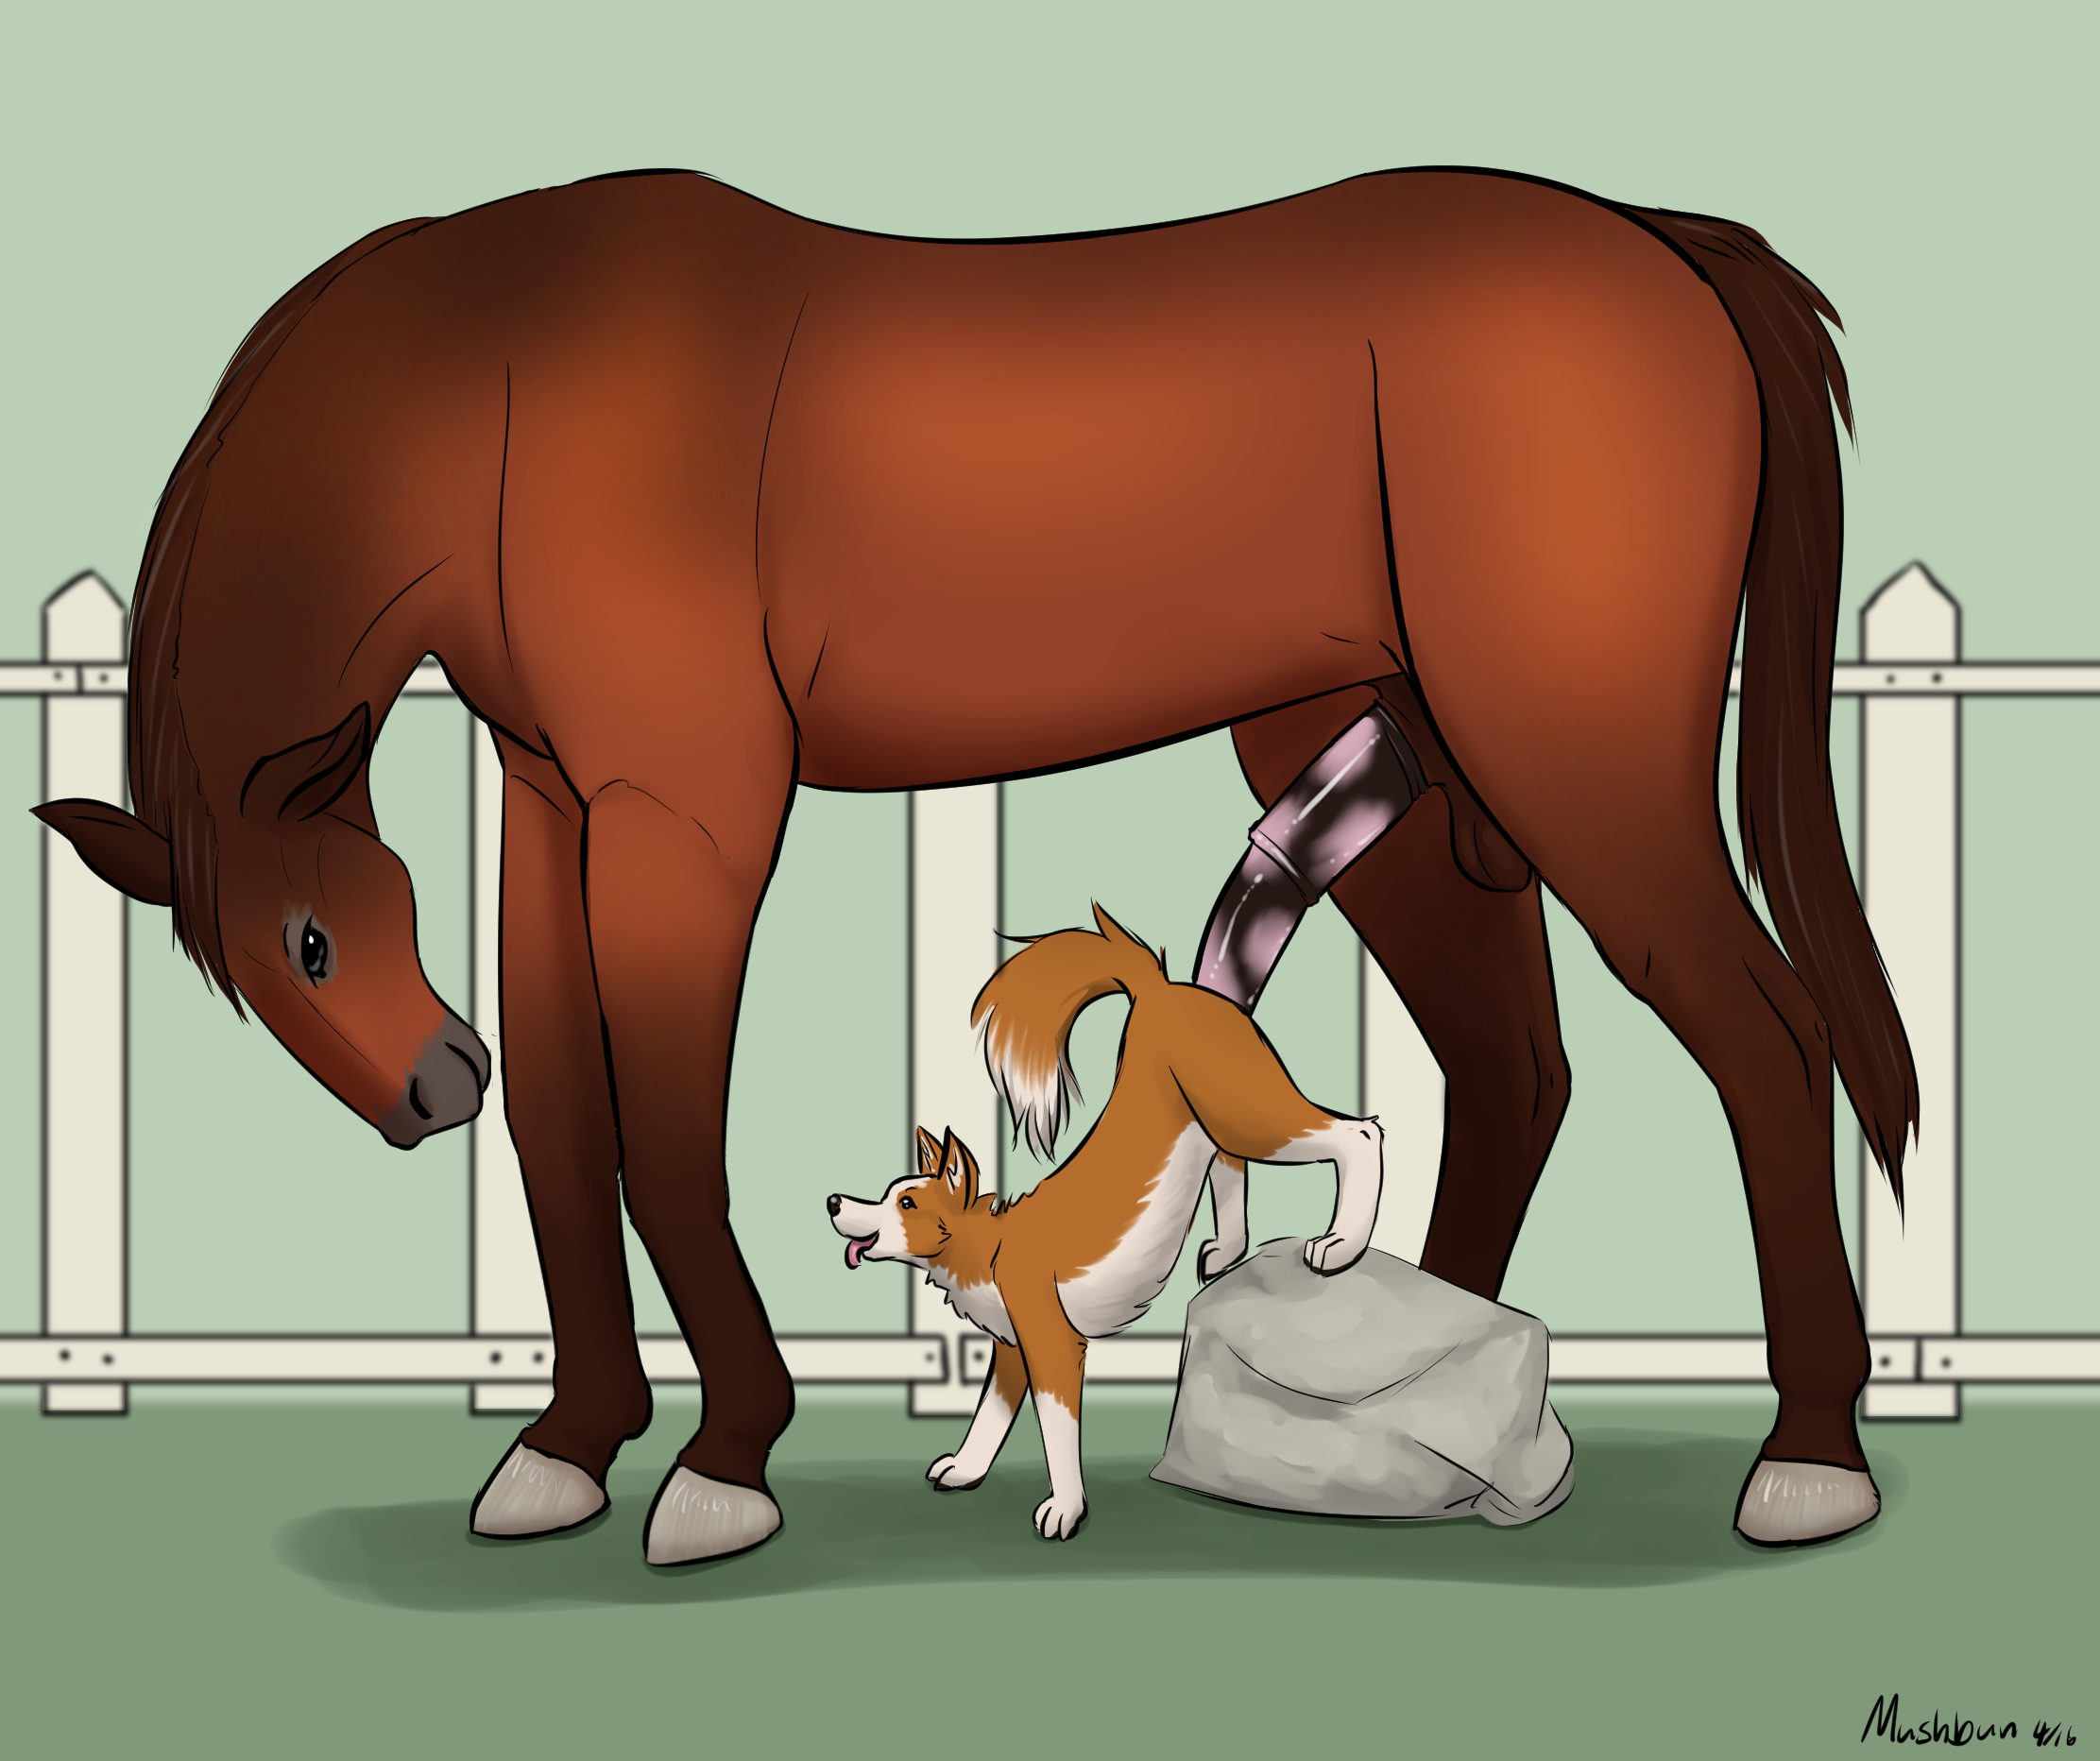 1488075_Mushbun_horse_and_dog_1